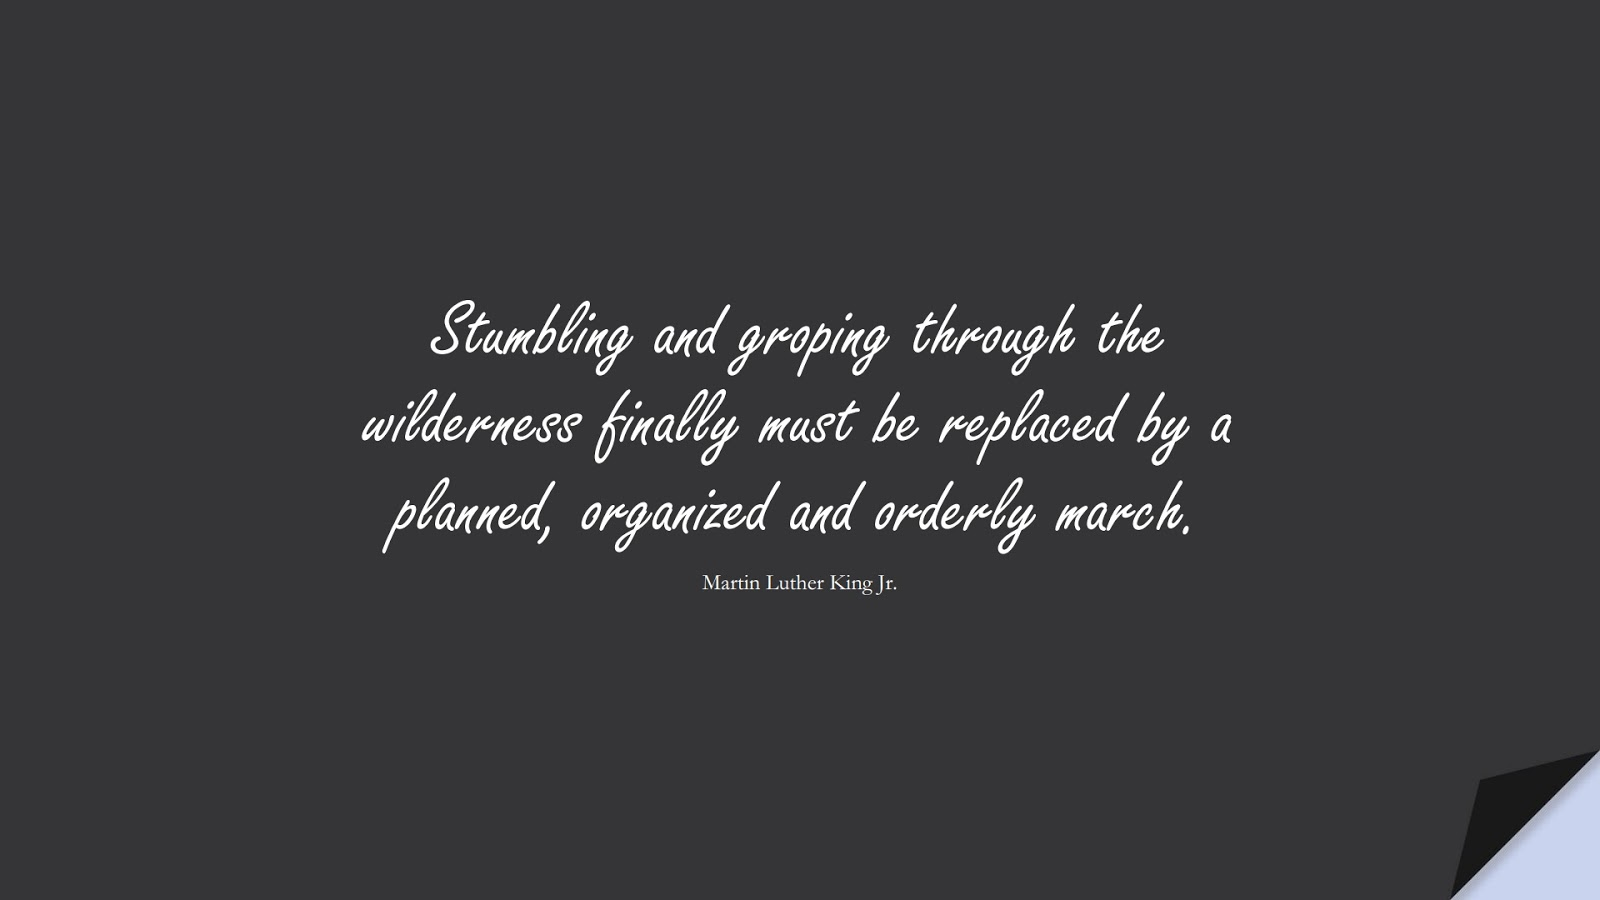 Stumbling and groping through the wilderness finally must be replaced by a planned, organized and orderly march. (Martin Luther King Jr.);  #MartinLutherKingJrQuotes